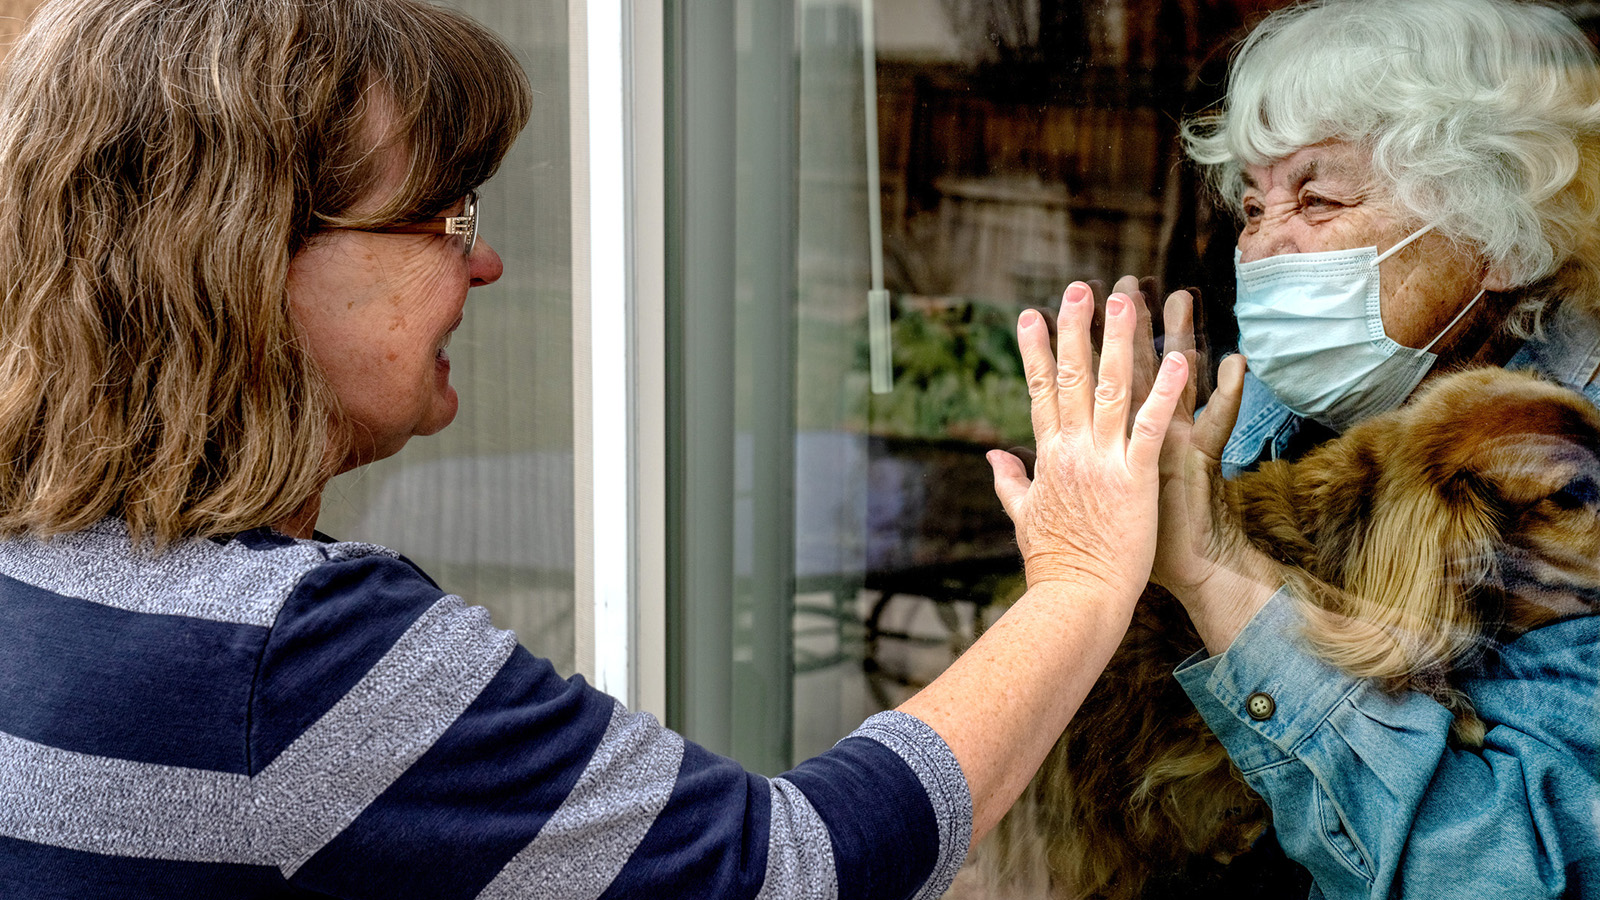 A touching moment as a mother visits with her daughter at the window of her home because of having COVID 19